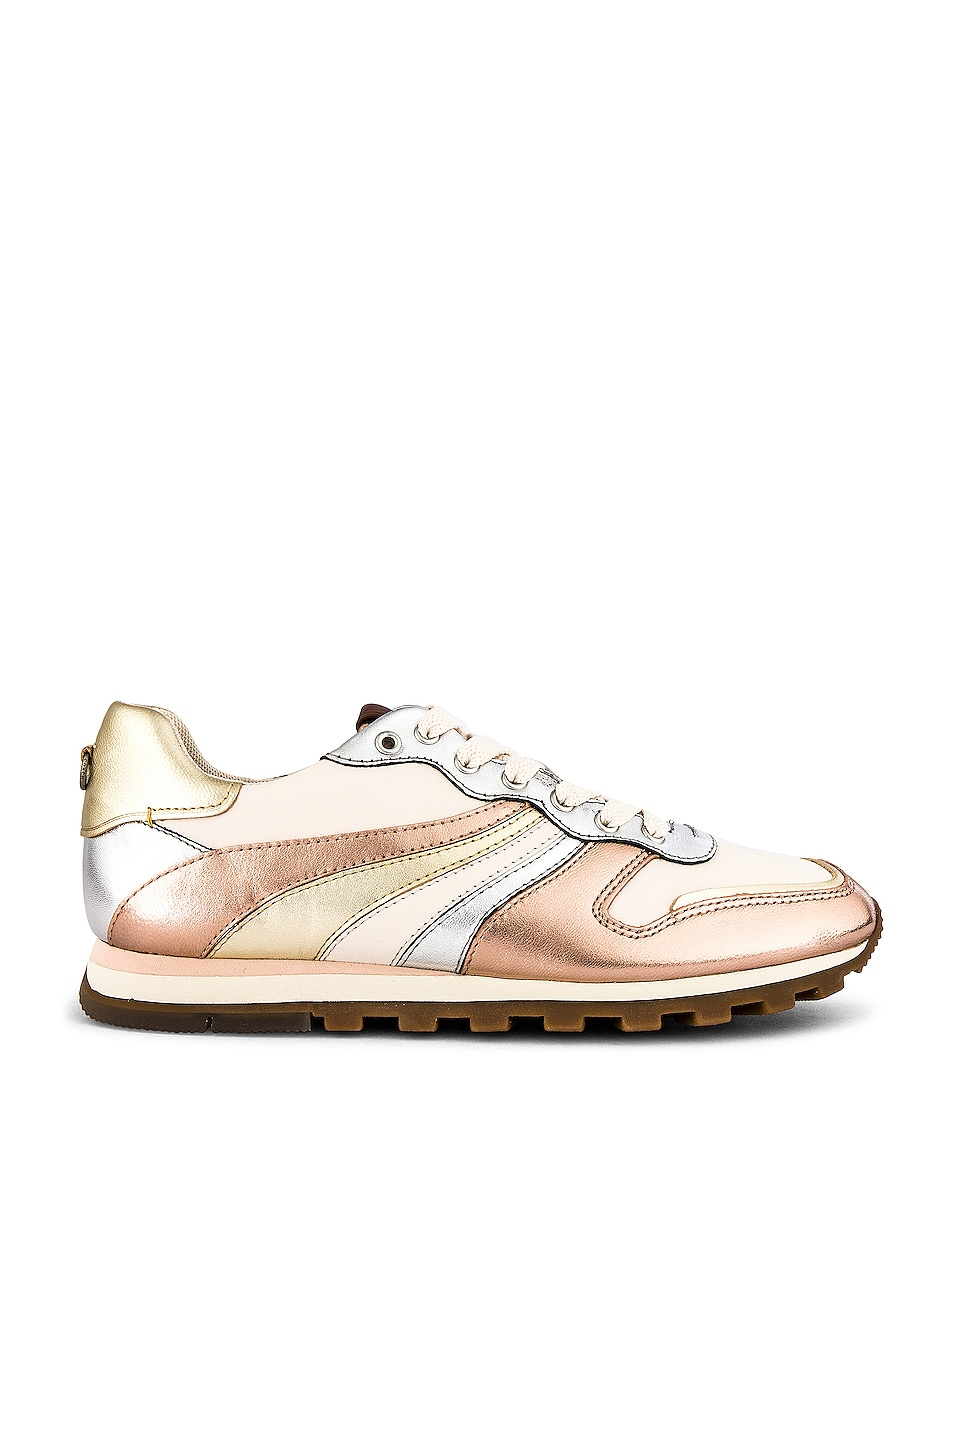 Coach 1941 C118 Wave Patchwork Runner in Rose Gold & Gold